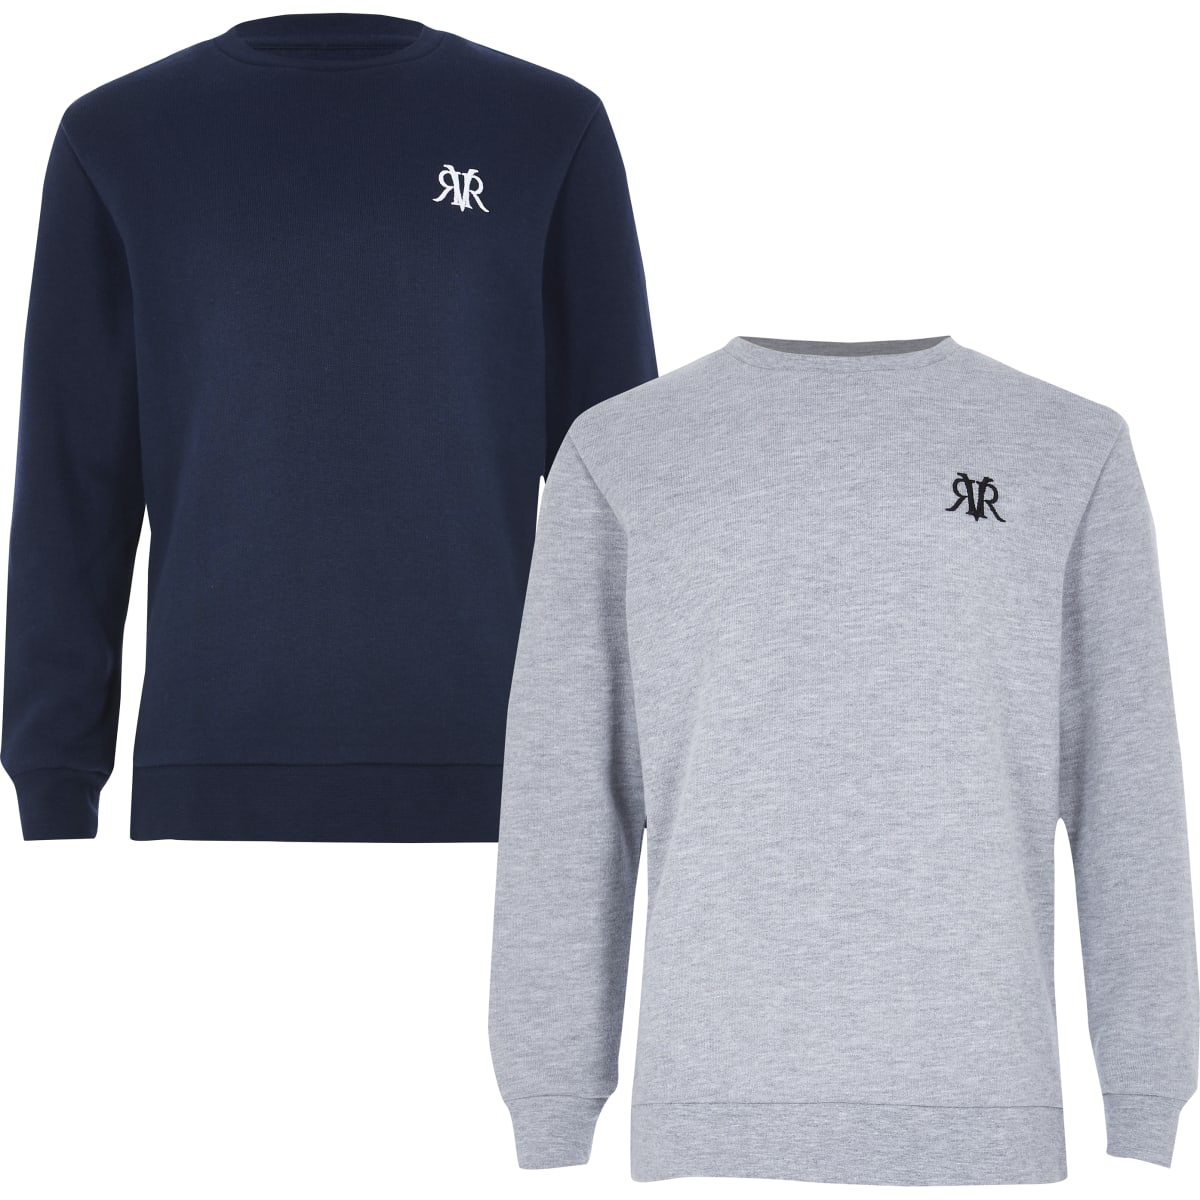 Boys navy and grey sweatshirt multipack